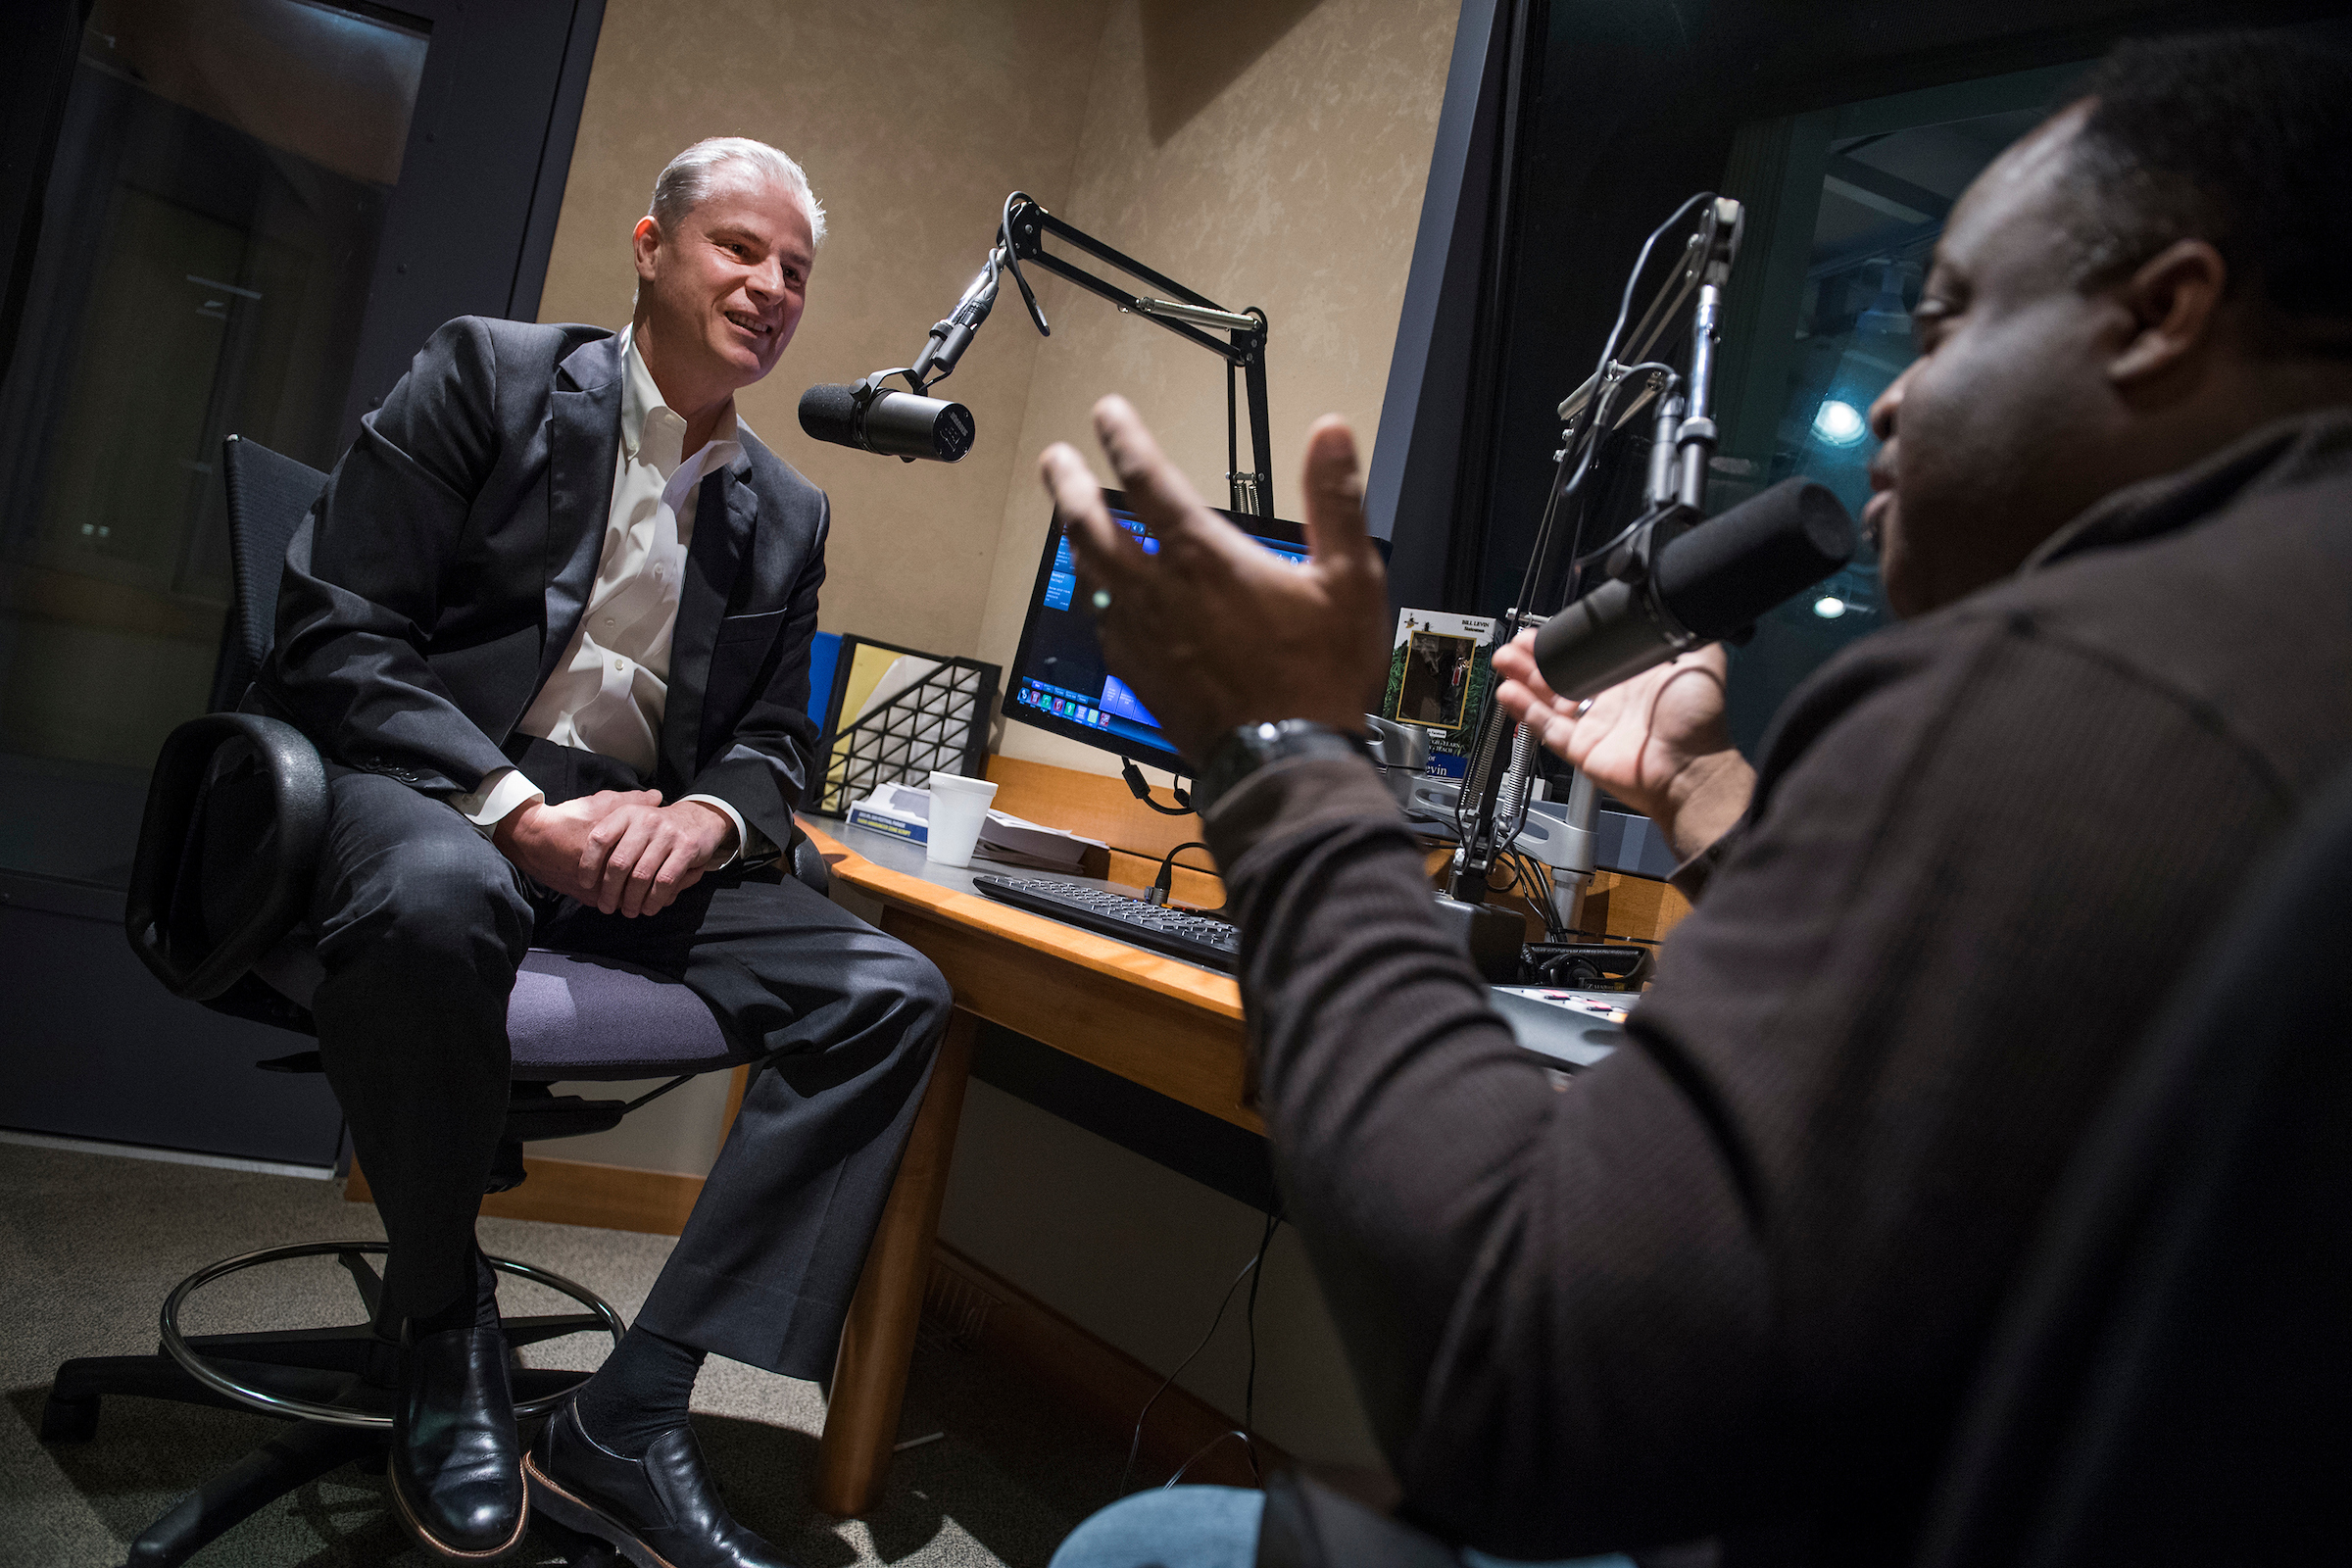 UNITED STATES - APRIL 3: Steve Braun, left, who is running for the Republican nomination for Indiana's 4th Congressional District, is interviewed by Abdul Hakim-Shabazz at WIBC studios in Indianapolis, Ind., on April 3, 2018. (Photo By Tom Williams/CQ Roll Call)